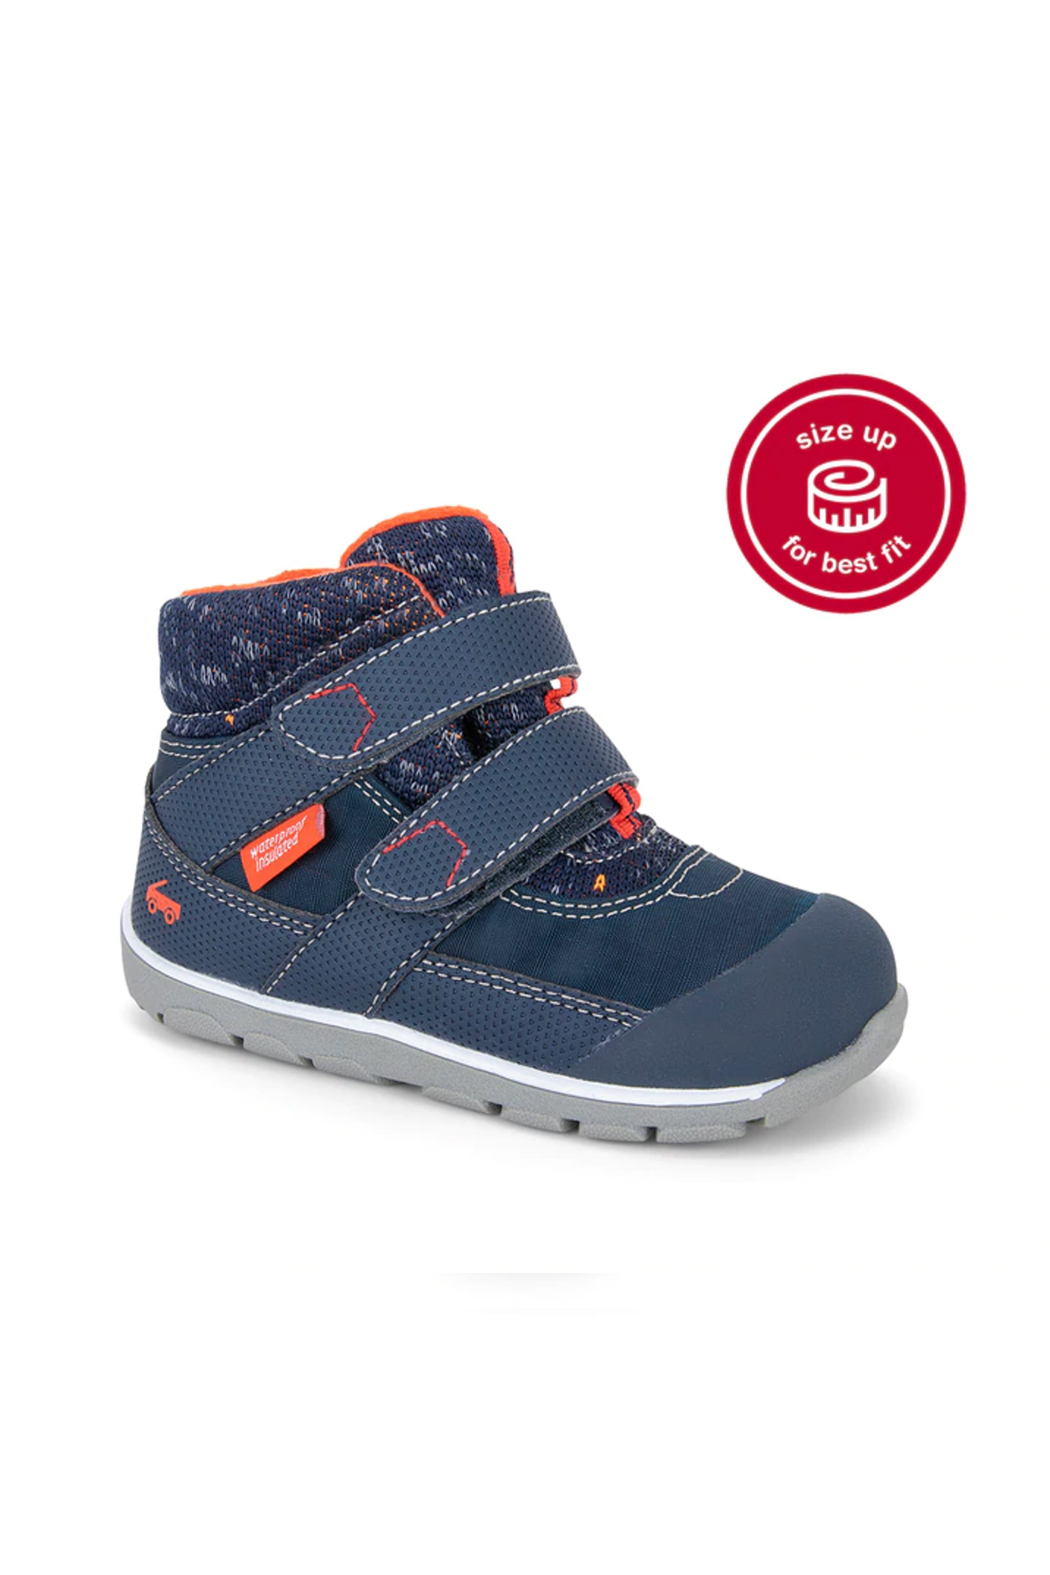 See Kai Run Atlas Waterproof Insulated Boot - Navy/Red - Back Cropped Image